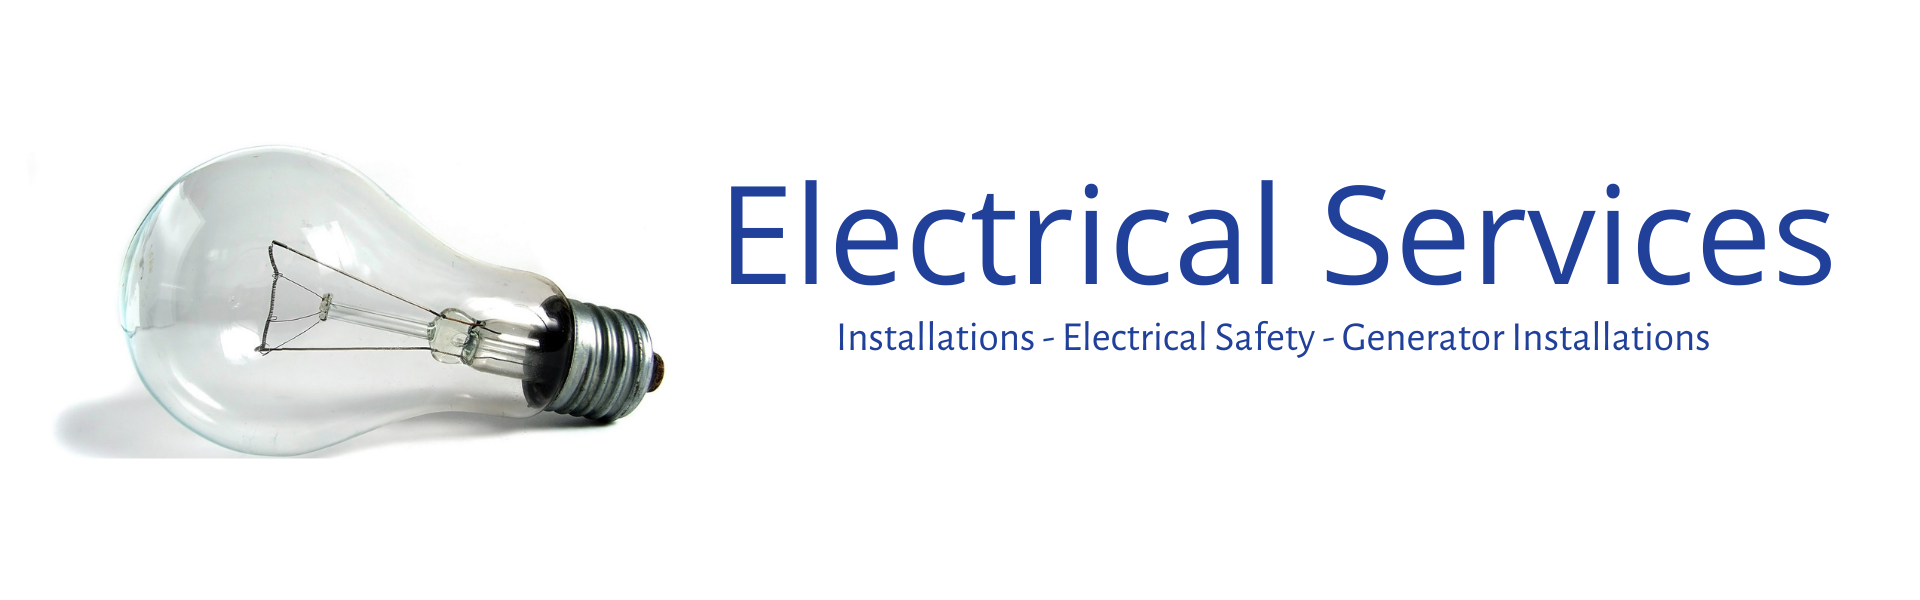 Light Bulb Electrical Services